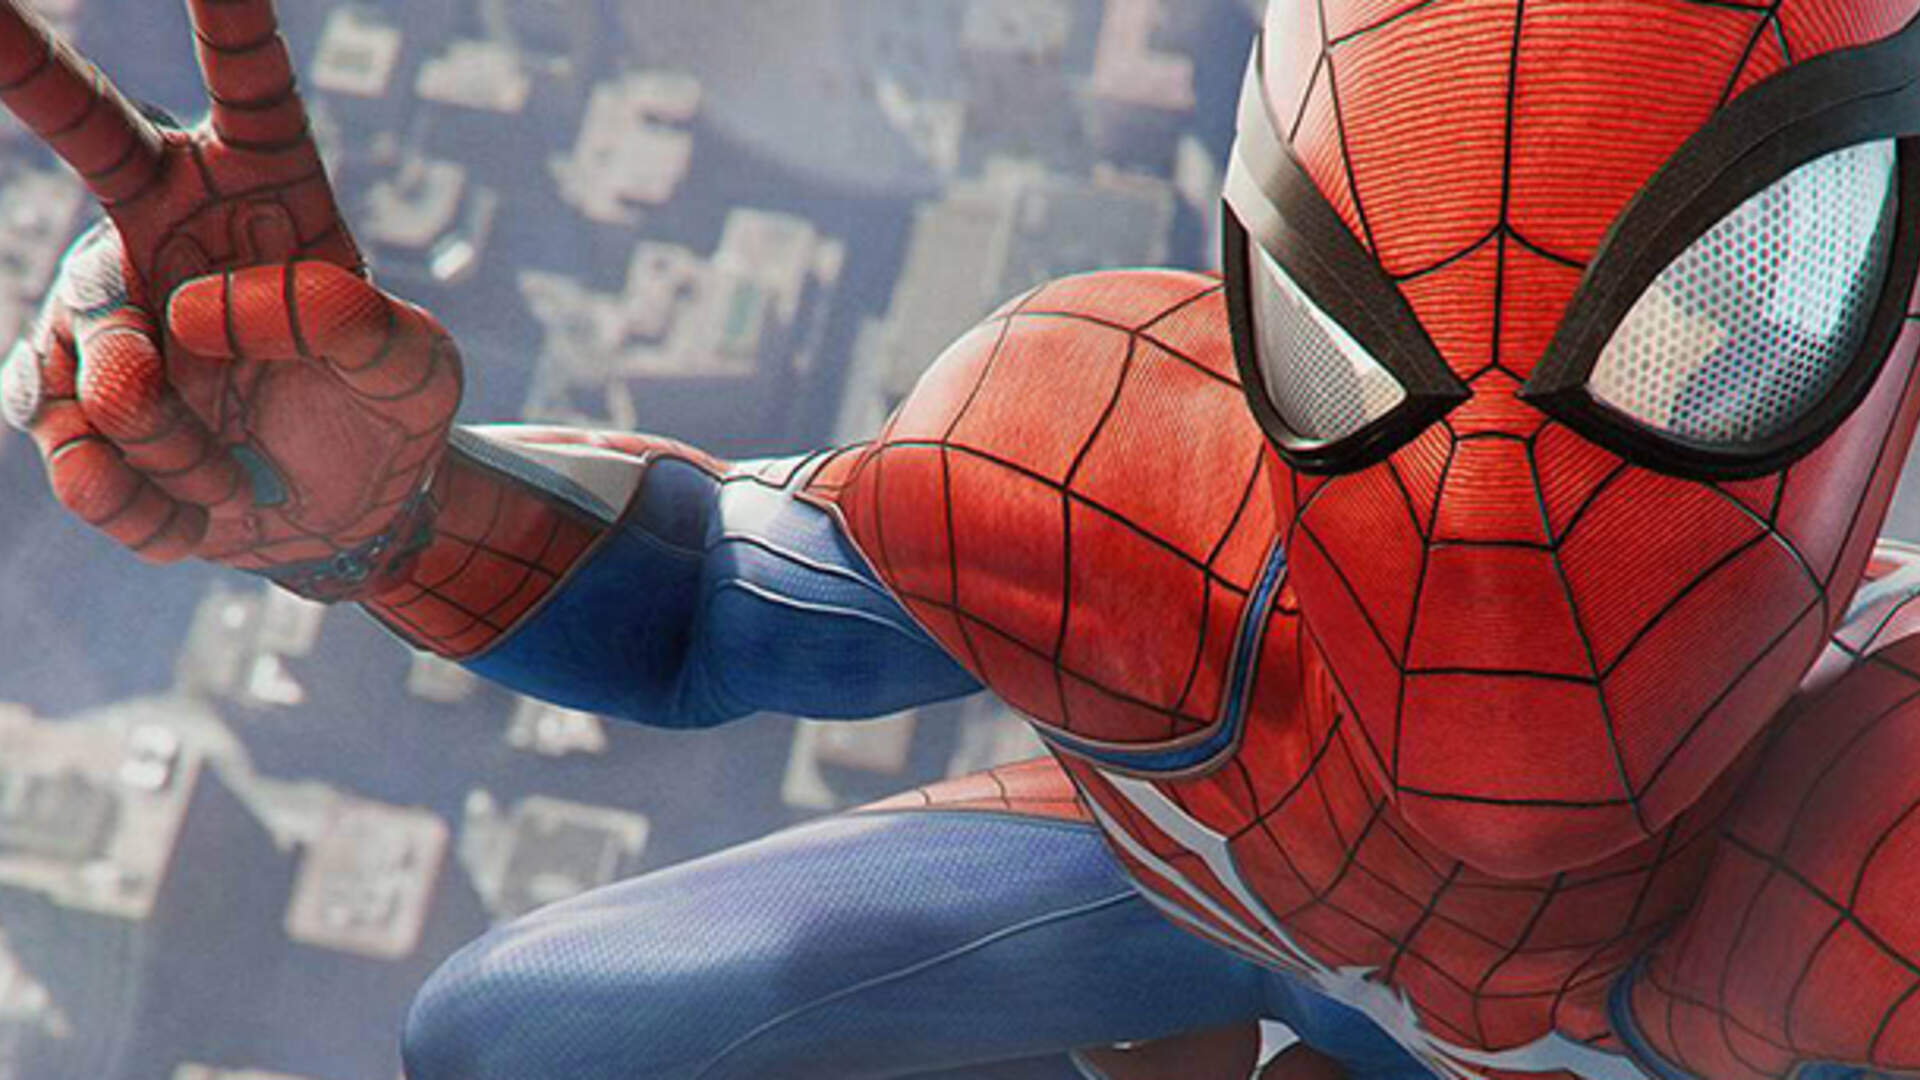 Spider-Man PS4's Game Length and File Size Revealed